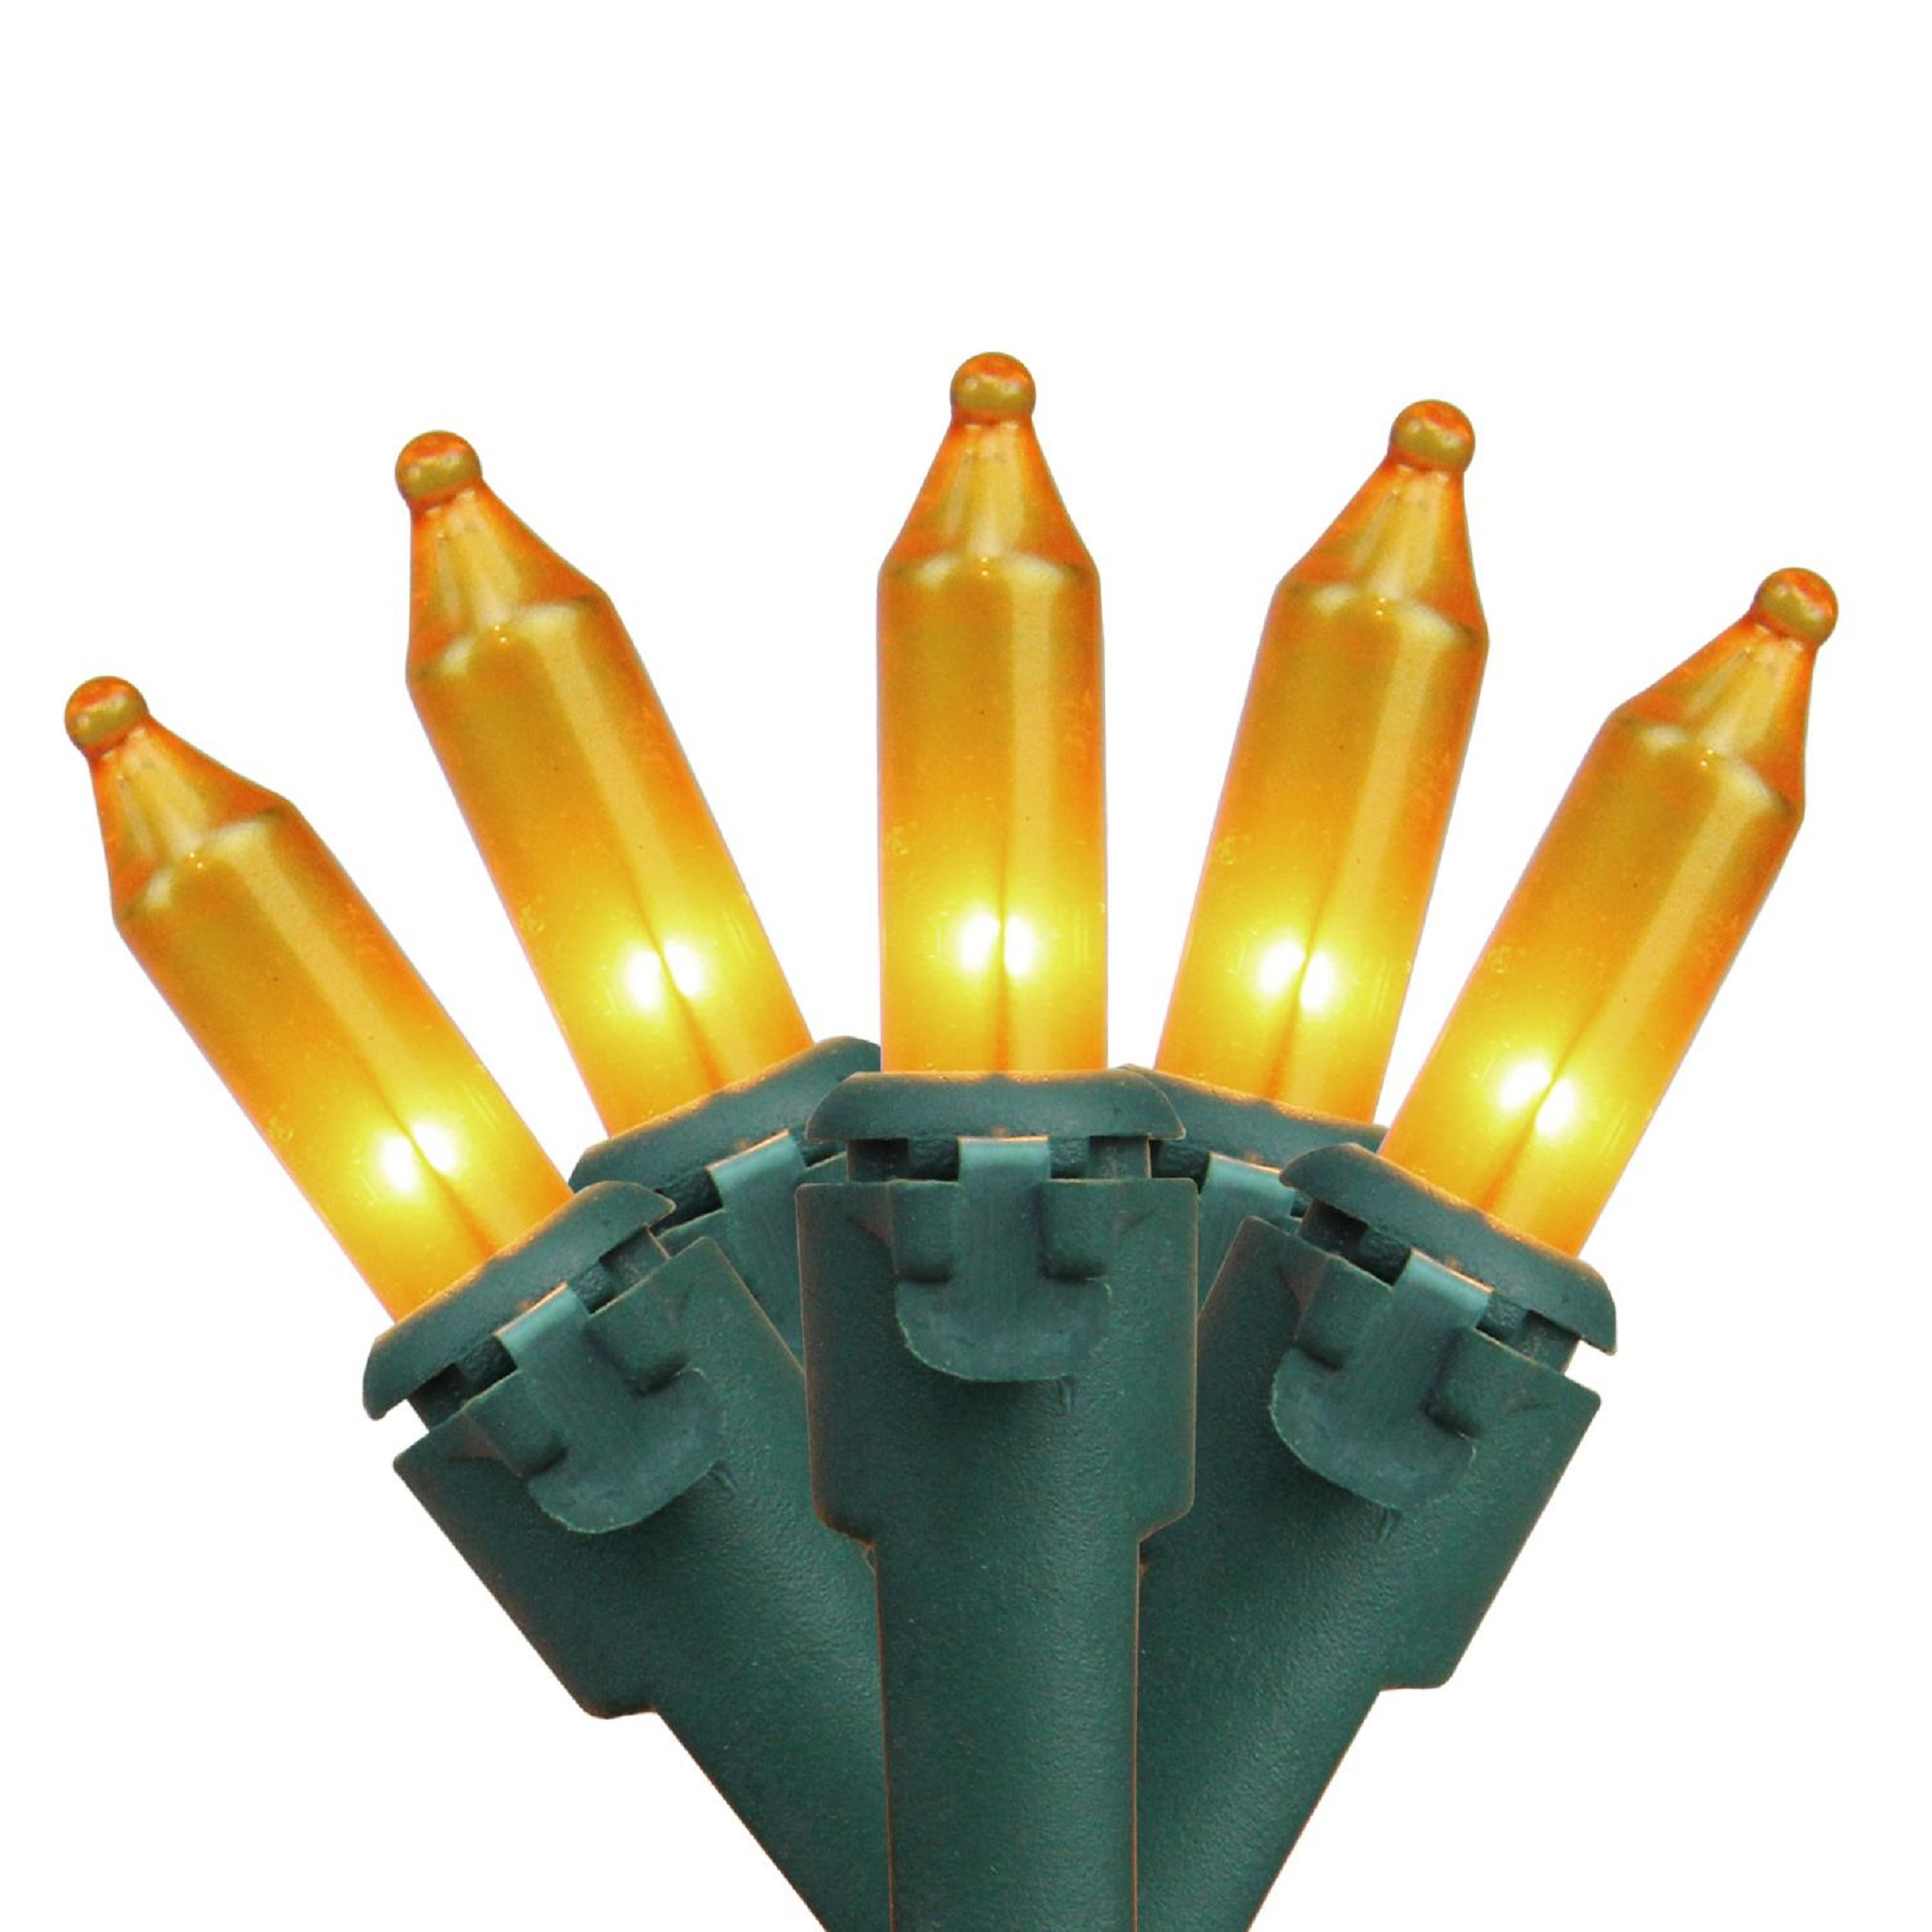 "Set of 100 Opaque Gold Mini Christmas Lights 4.25"" Spacing - Green Wire"